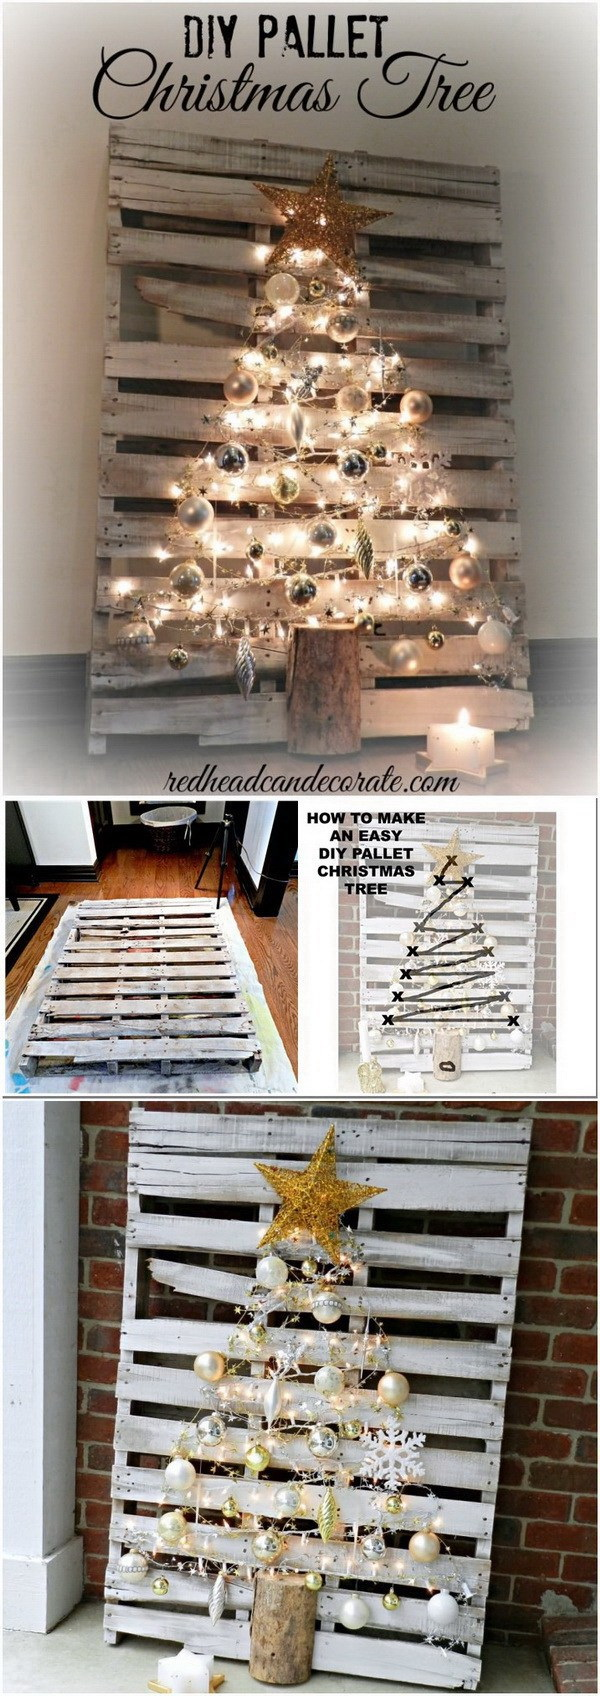 Pallet Lighting Christmas Tree. This stunning Christmas tree made with pallets and Christmas ornaments and lights will surely give the rustic charm you need for your holiday decor! Get started to make your own one and cherish year after year.